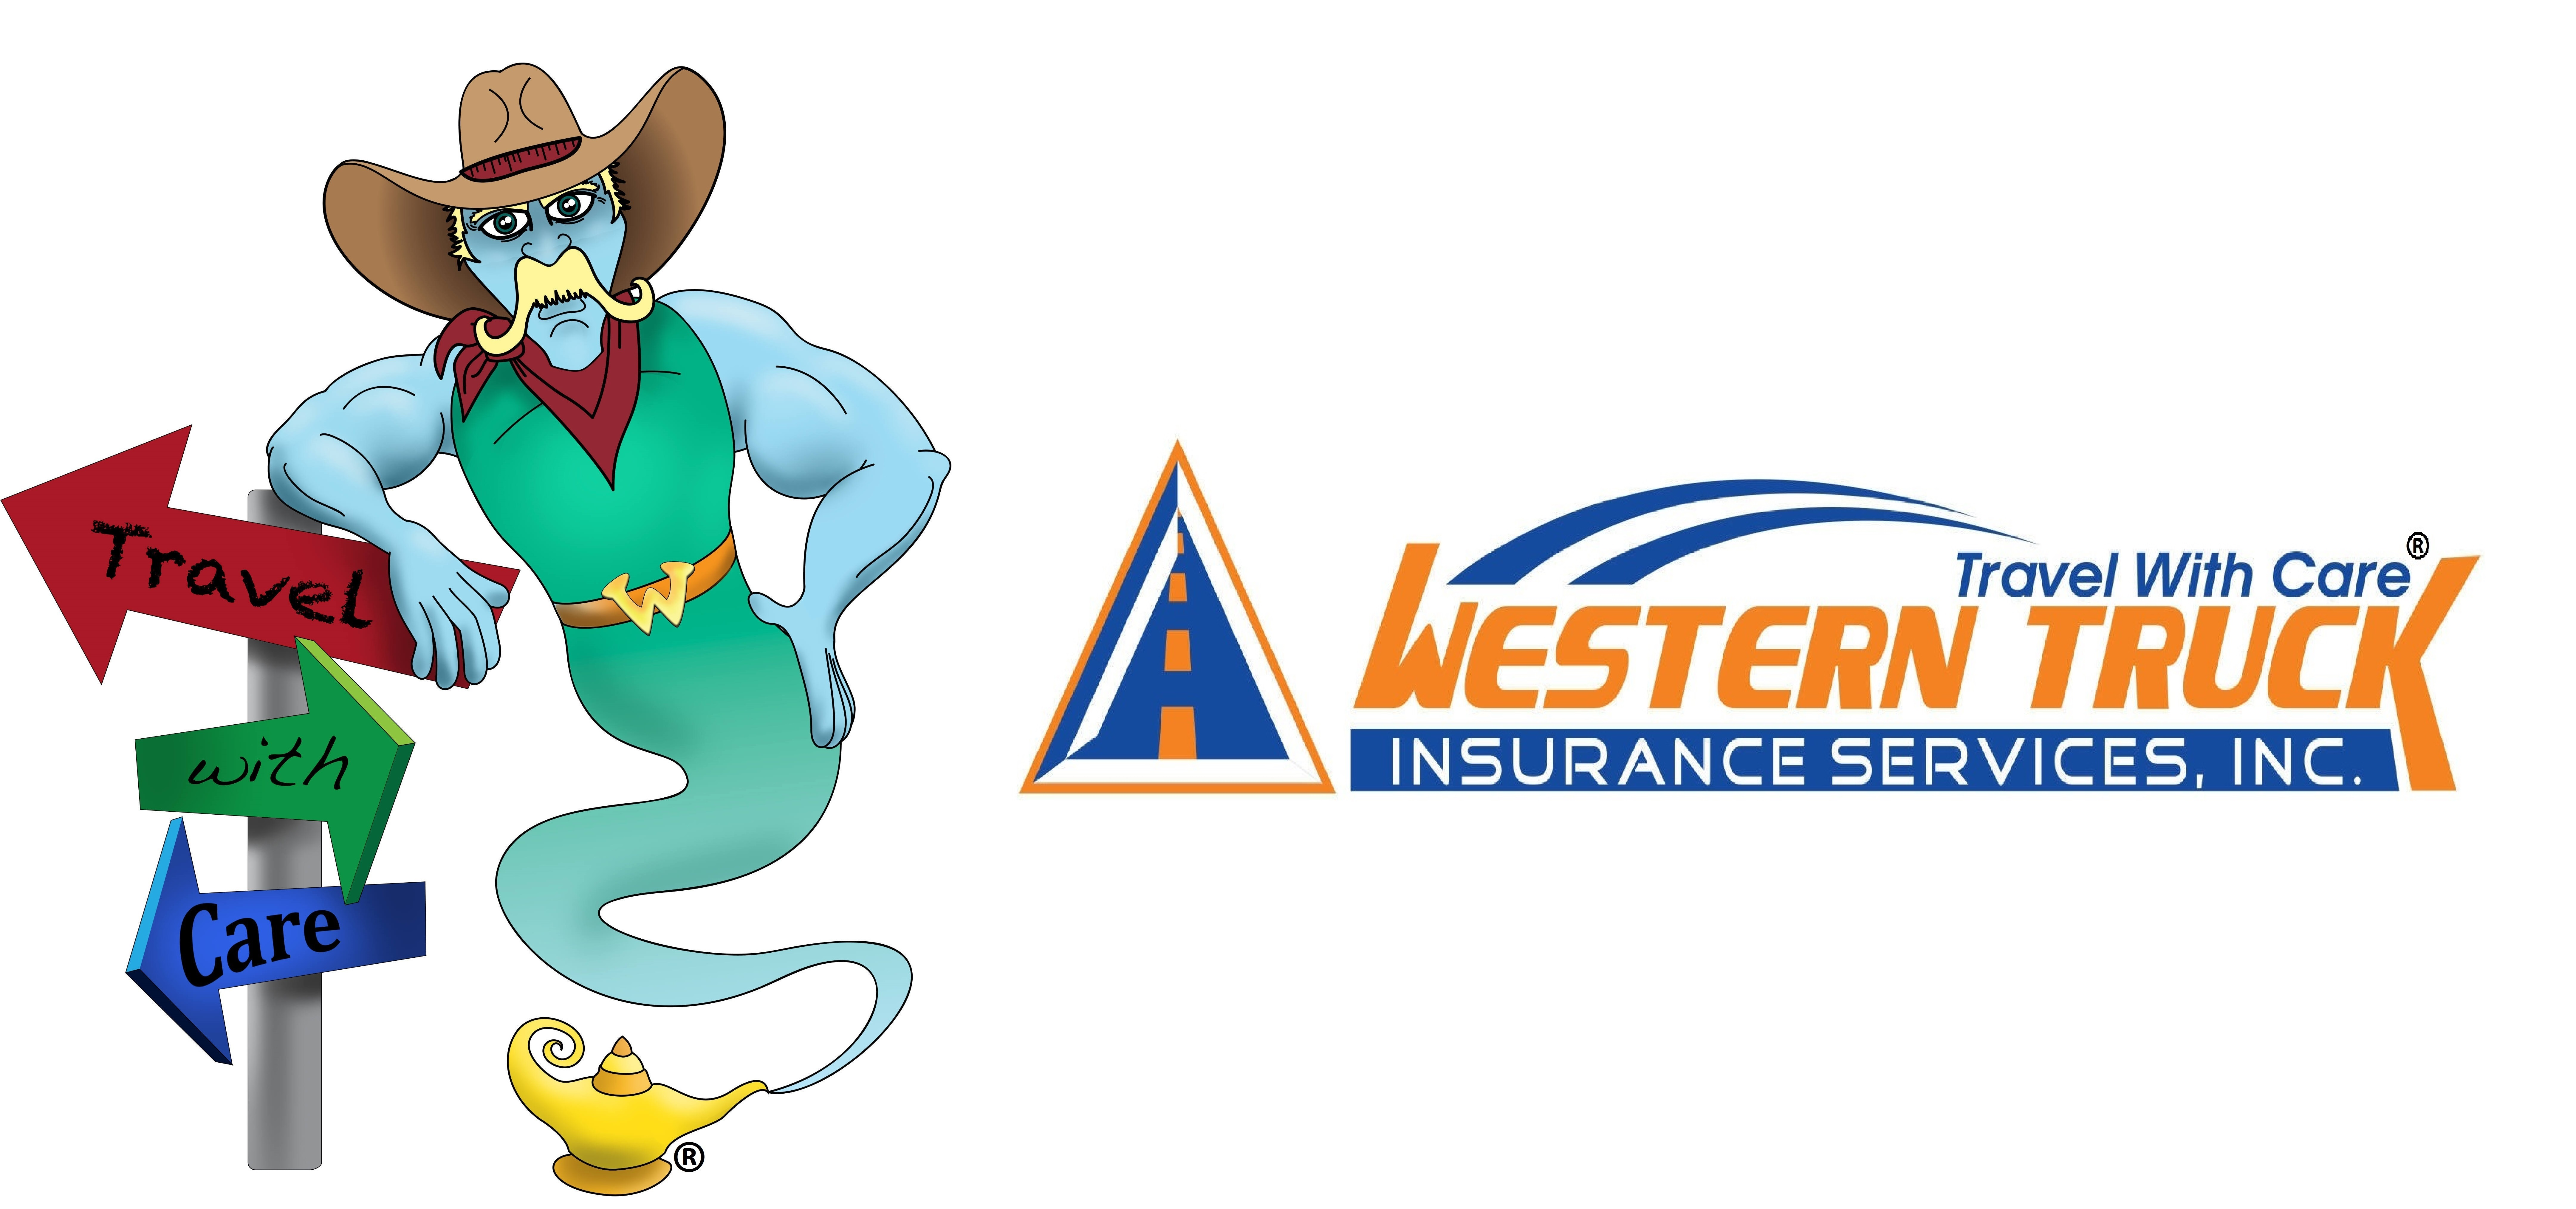 Western Truck Insurance Services